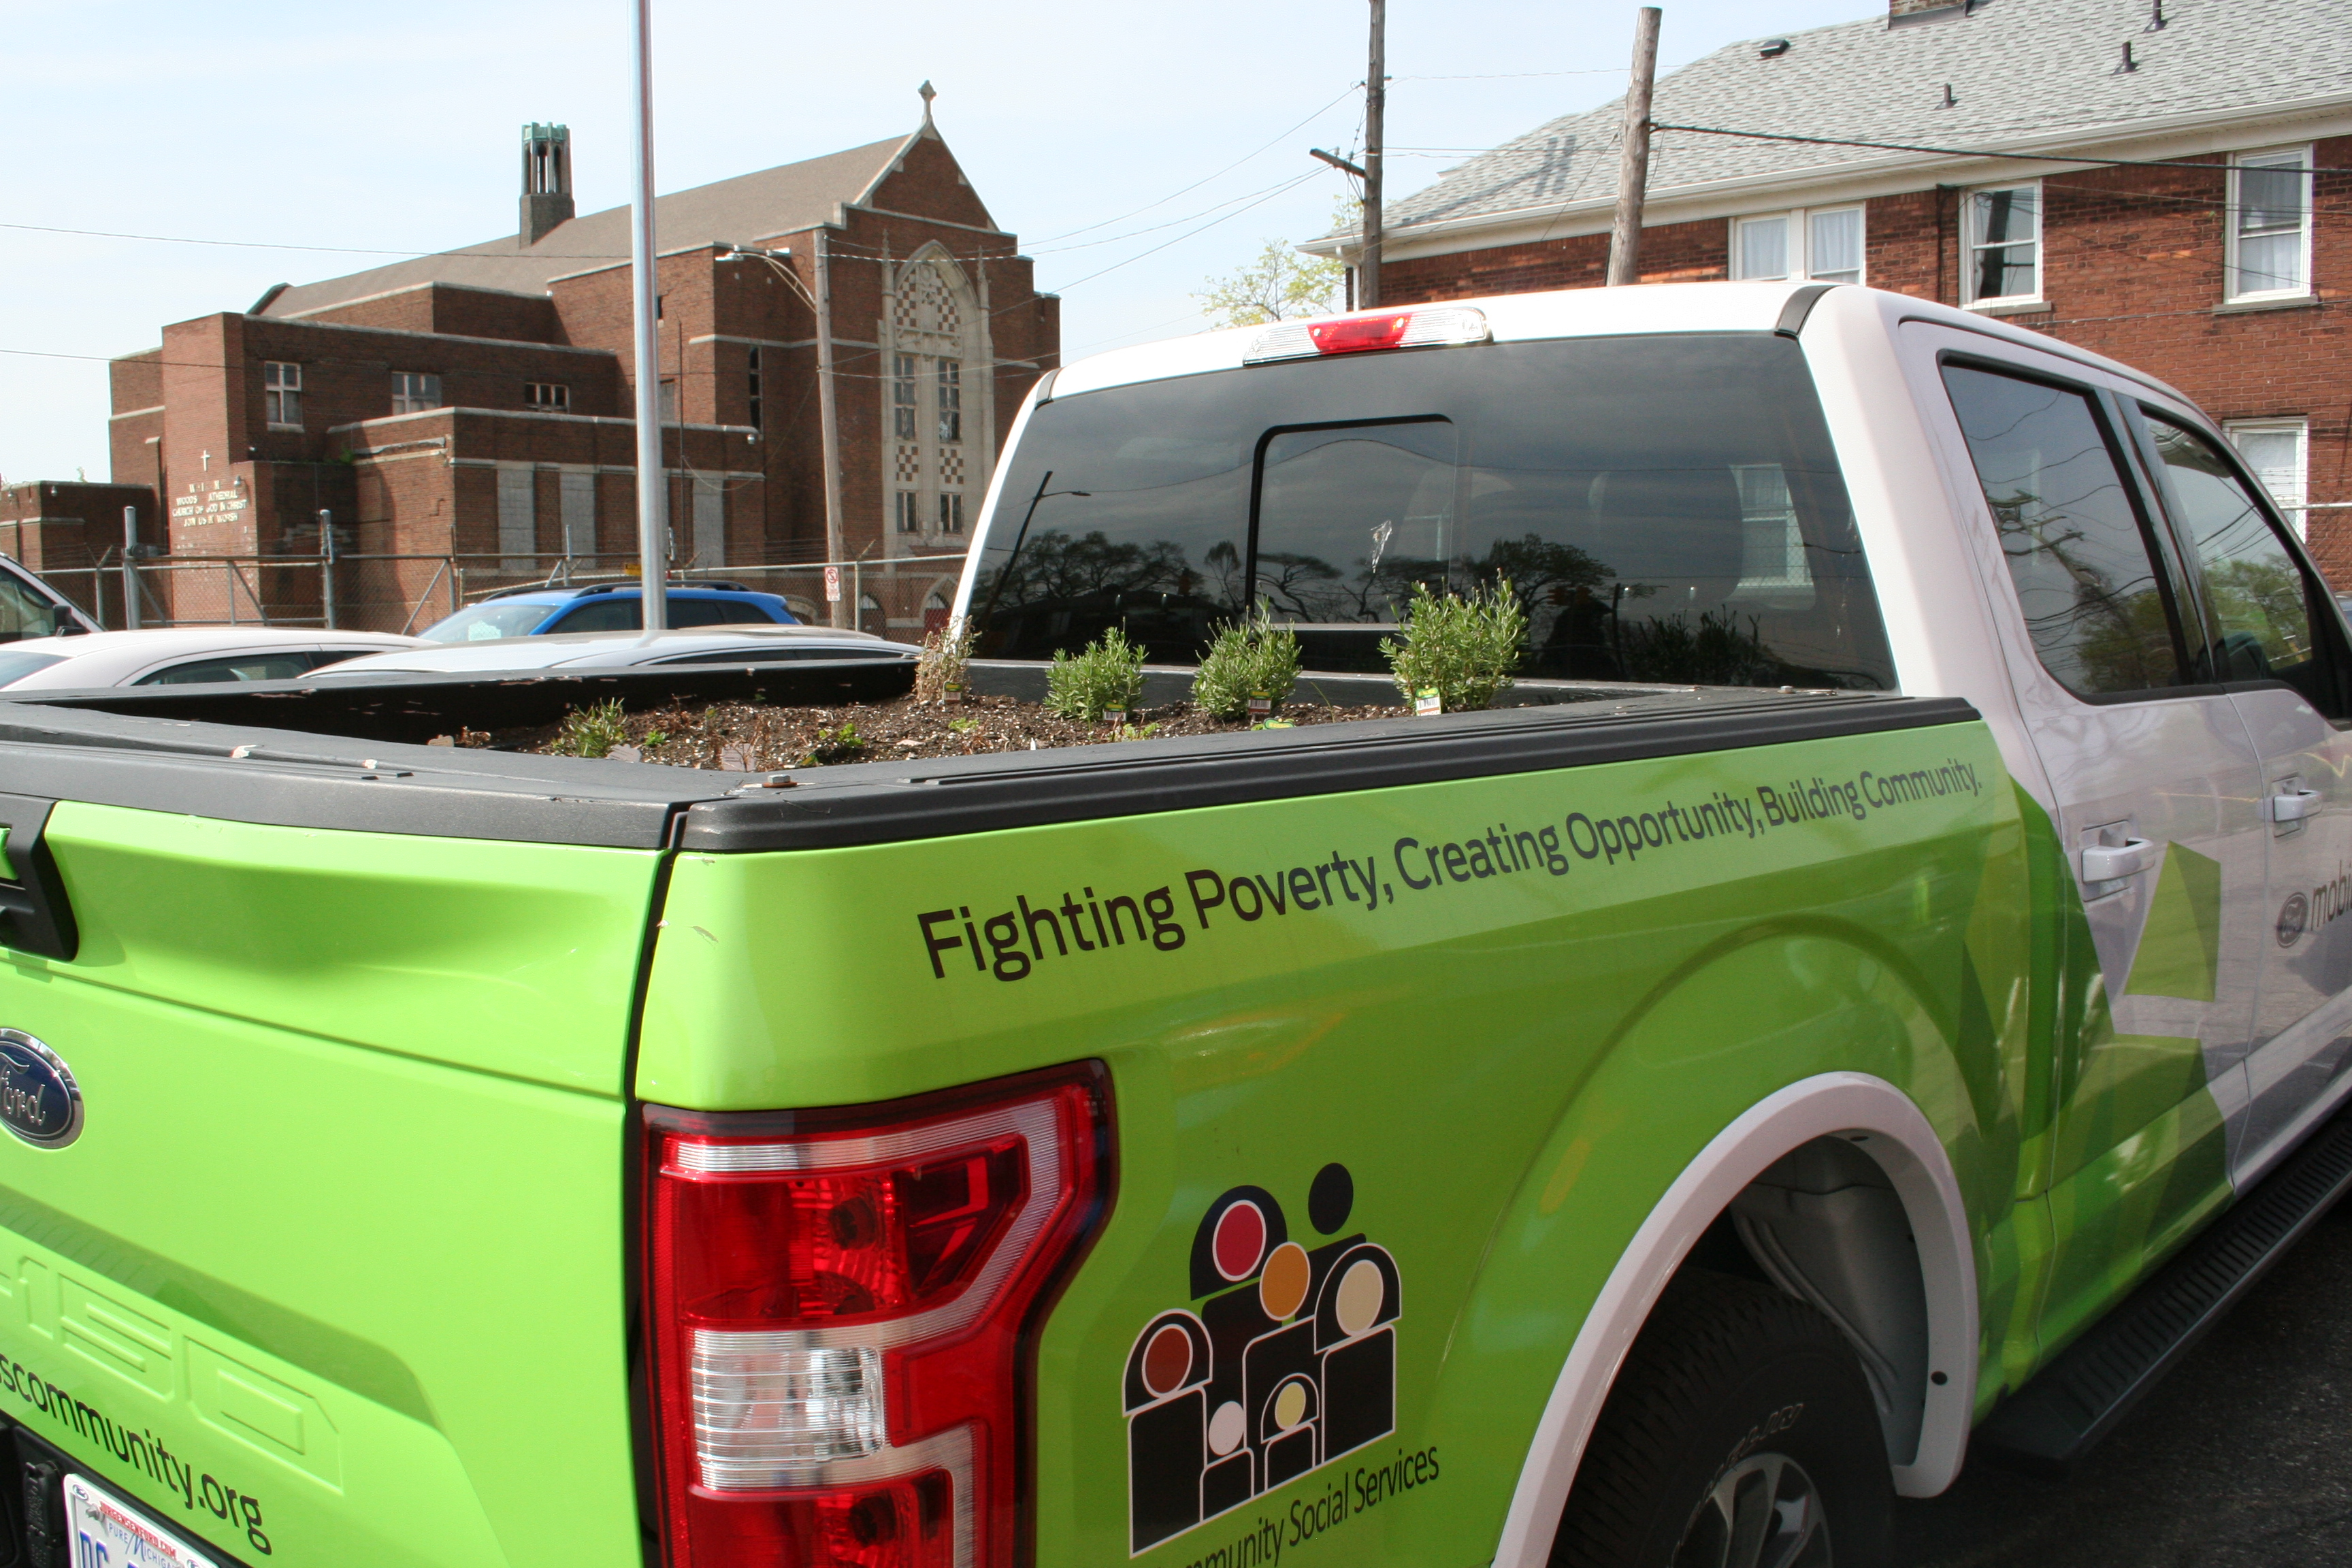 Cass Community Social Services Ford F-150 Mobile Farm Project